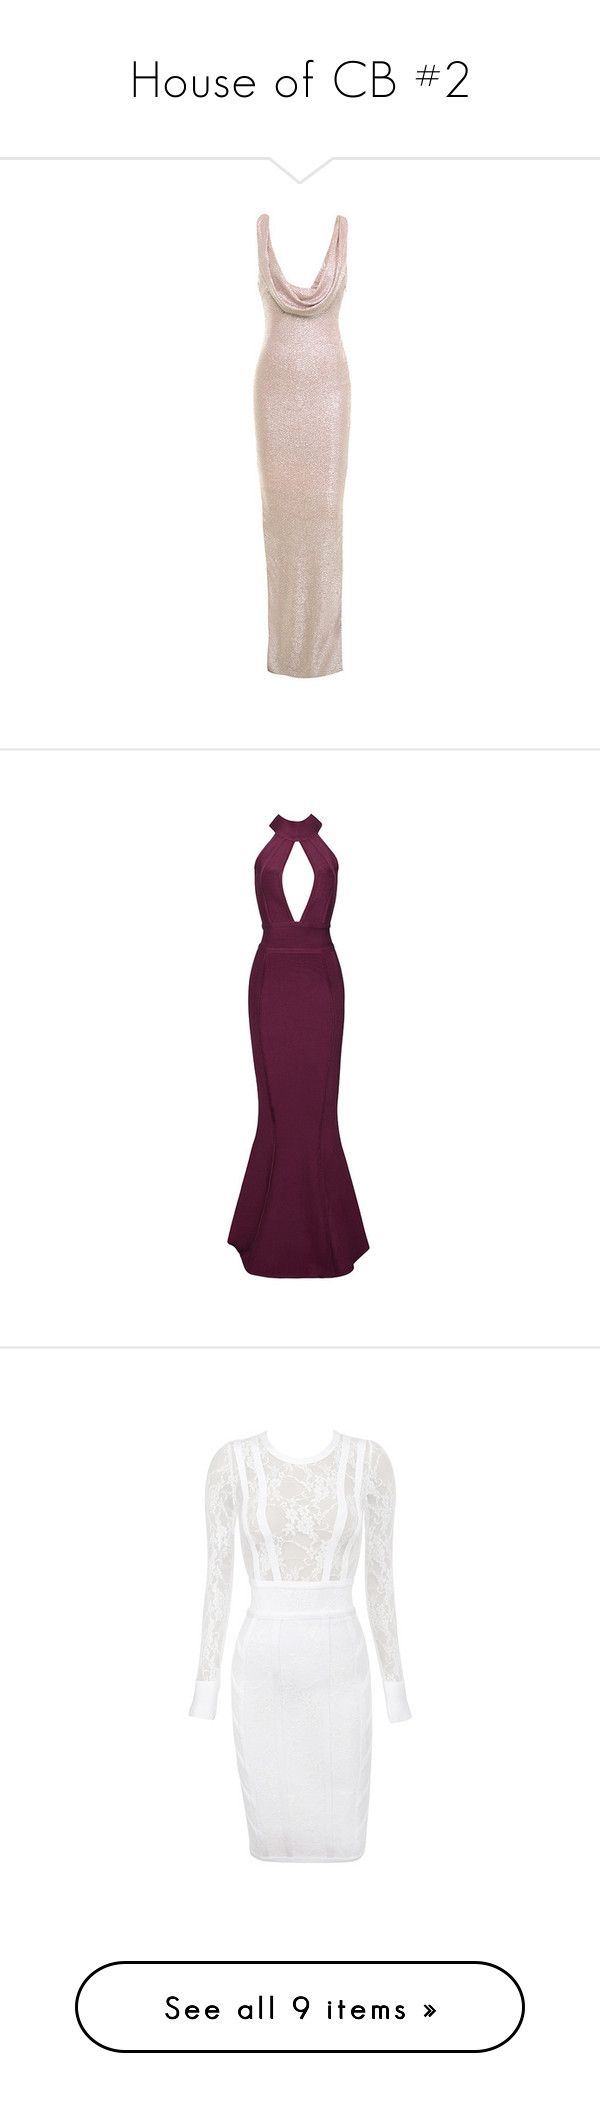 """""""House of CB #2"""" by deborahsauveur ❤ liked on Polyvore featuring dresses, pale pink maxi dress, maxi dresses, drape dress, pastel pink dress, sexy backless dresses, sexy evening gowns, evening maxi dresses, purple maxi skirt and purple evening gowns"""